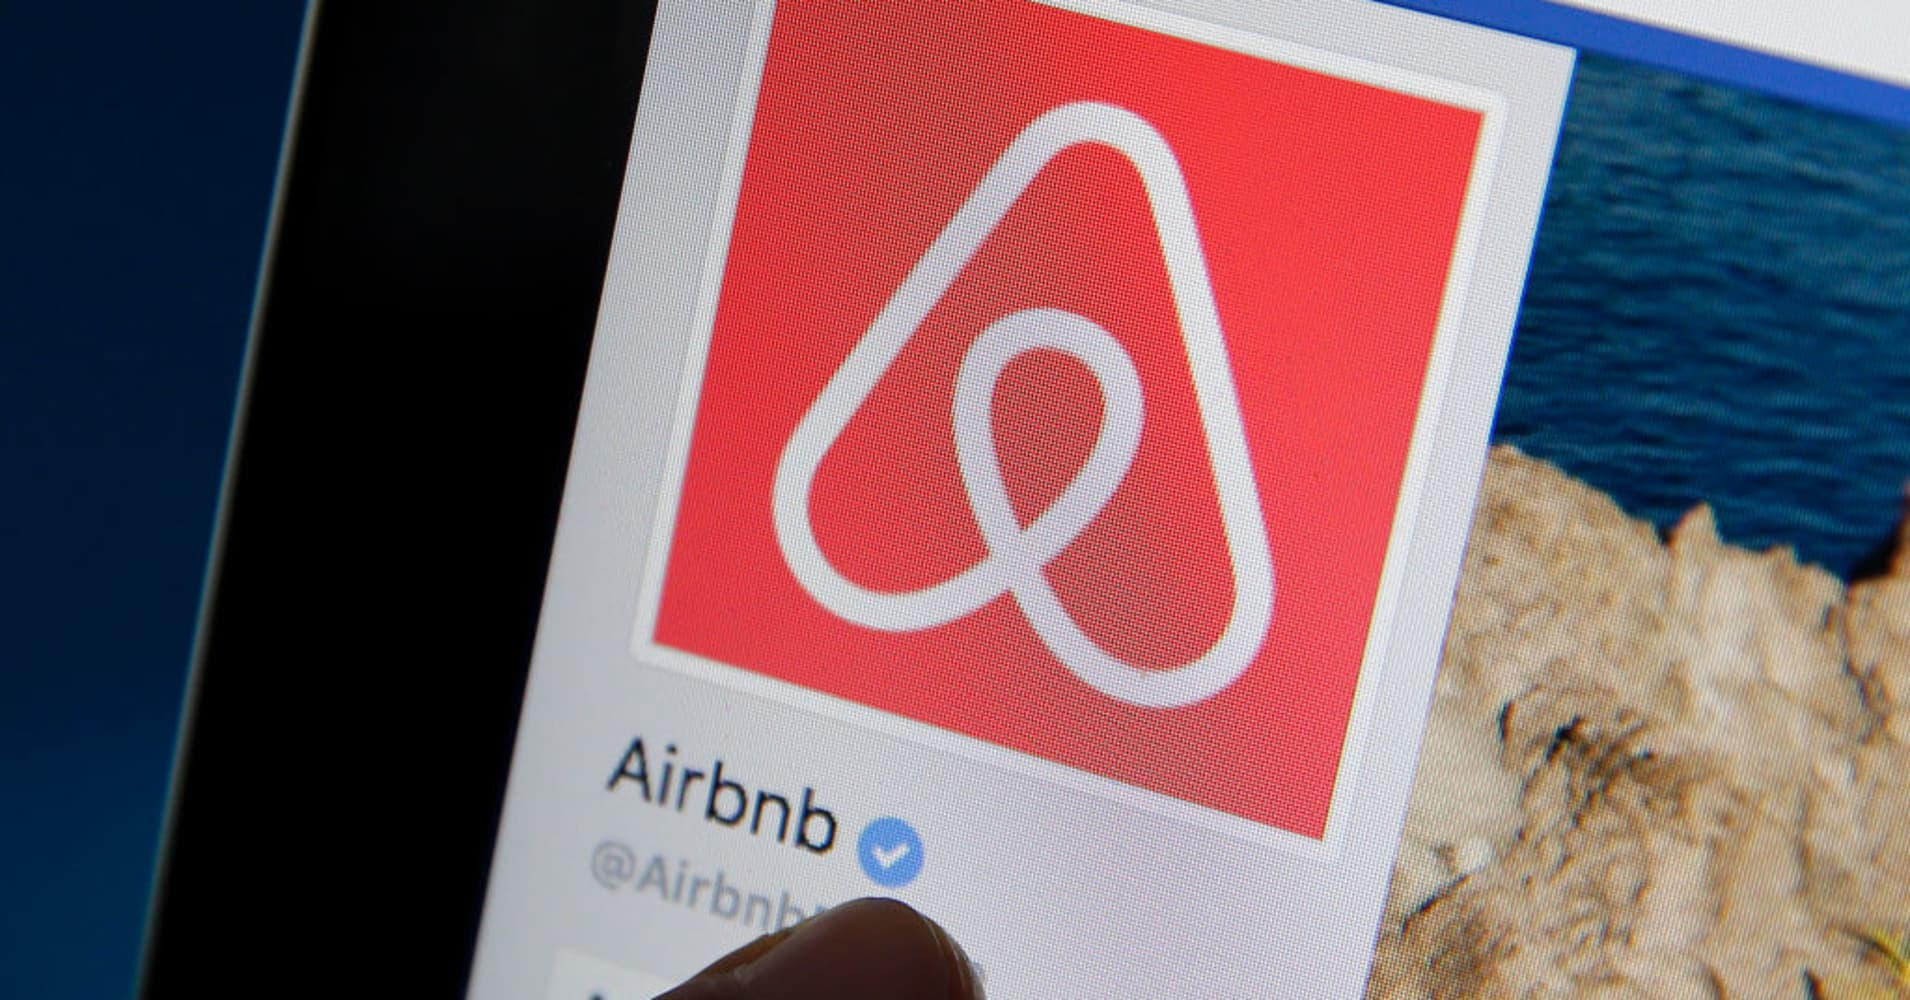 Expect Airbnb to go public within the next couple of years ...